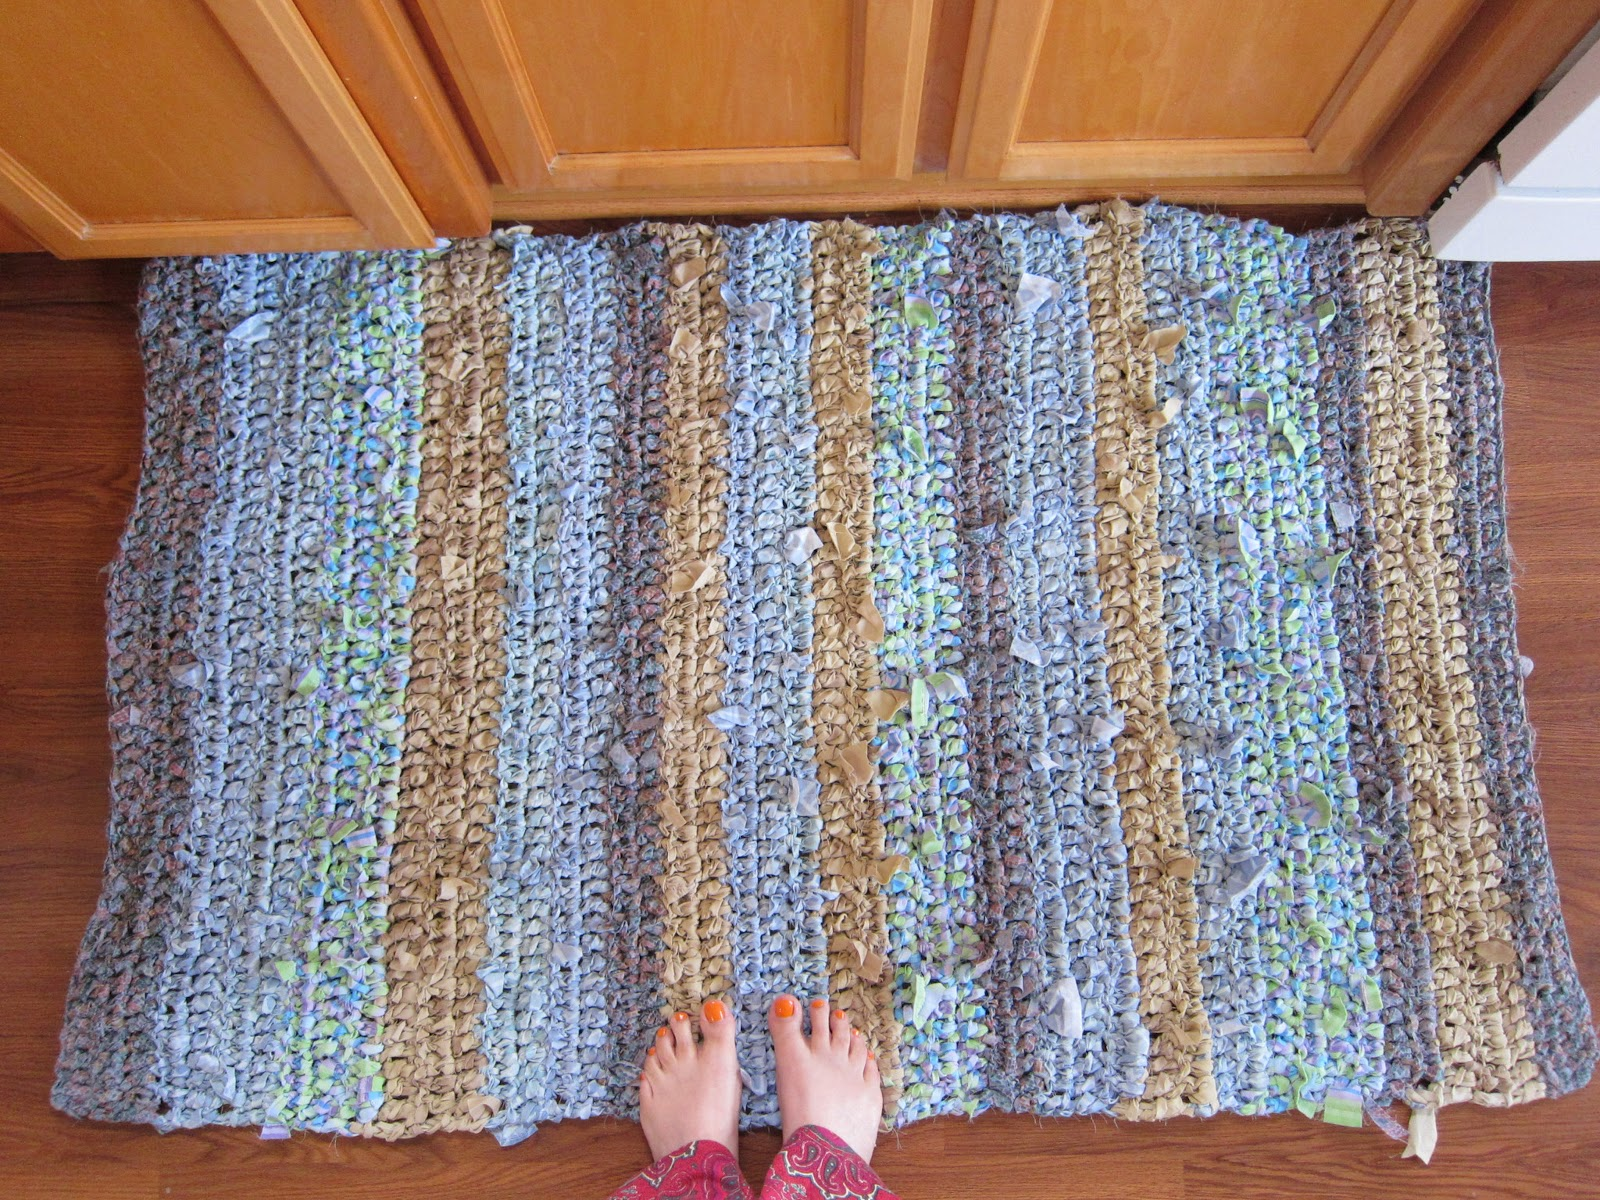 Crochet Rag Rugs Basic Pattern Collection - Kindle edition How to make old fashioned rag rugs